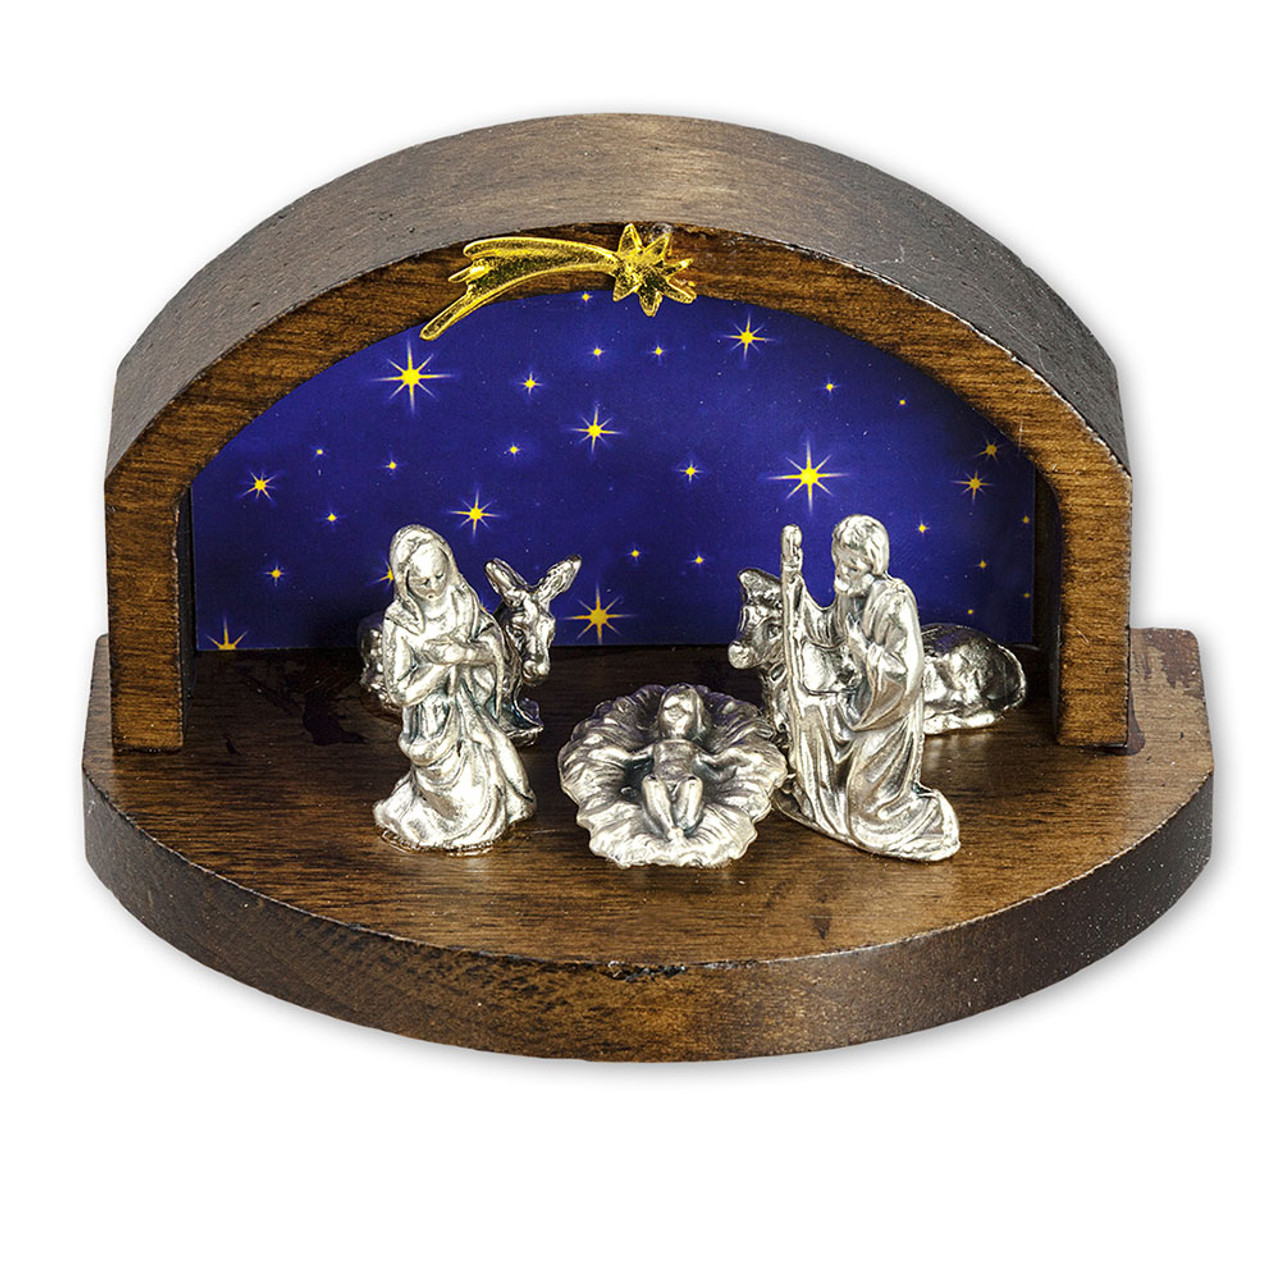 Petite Wood Nativity Scene with Star Background